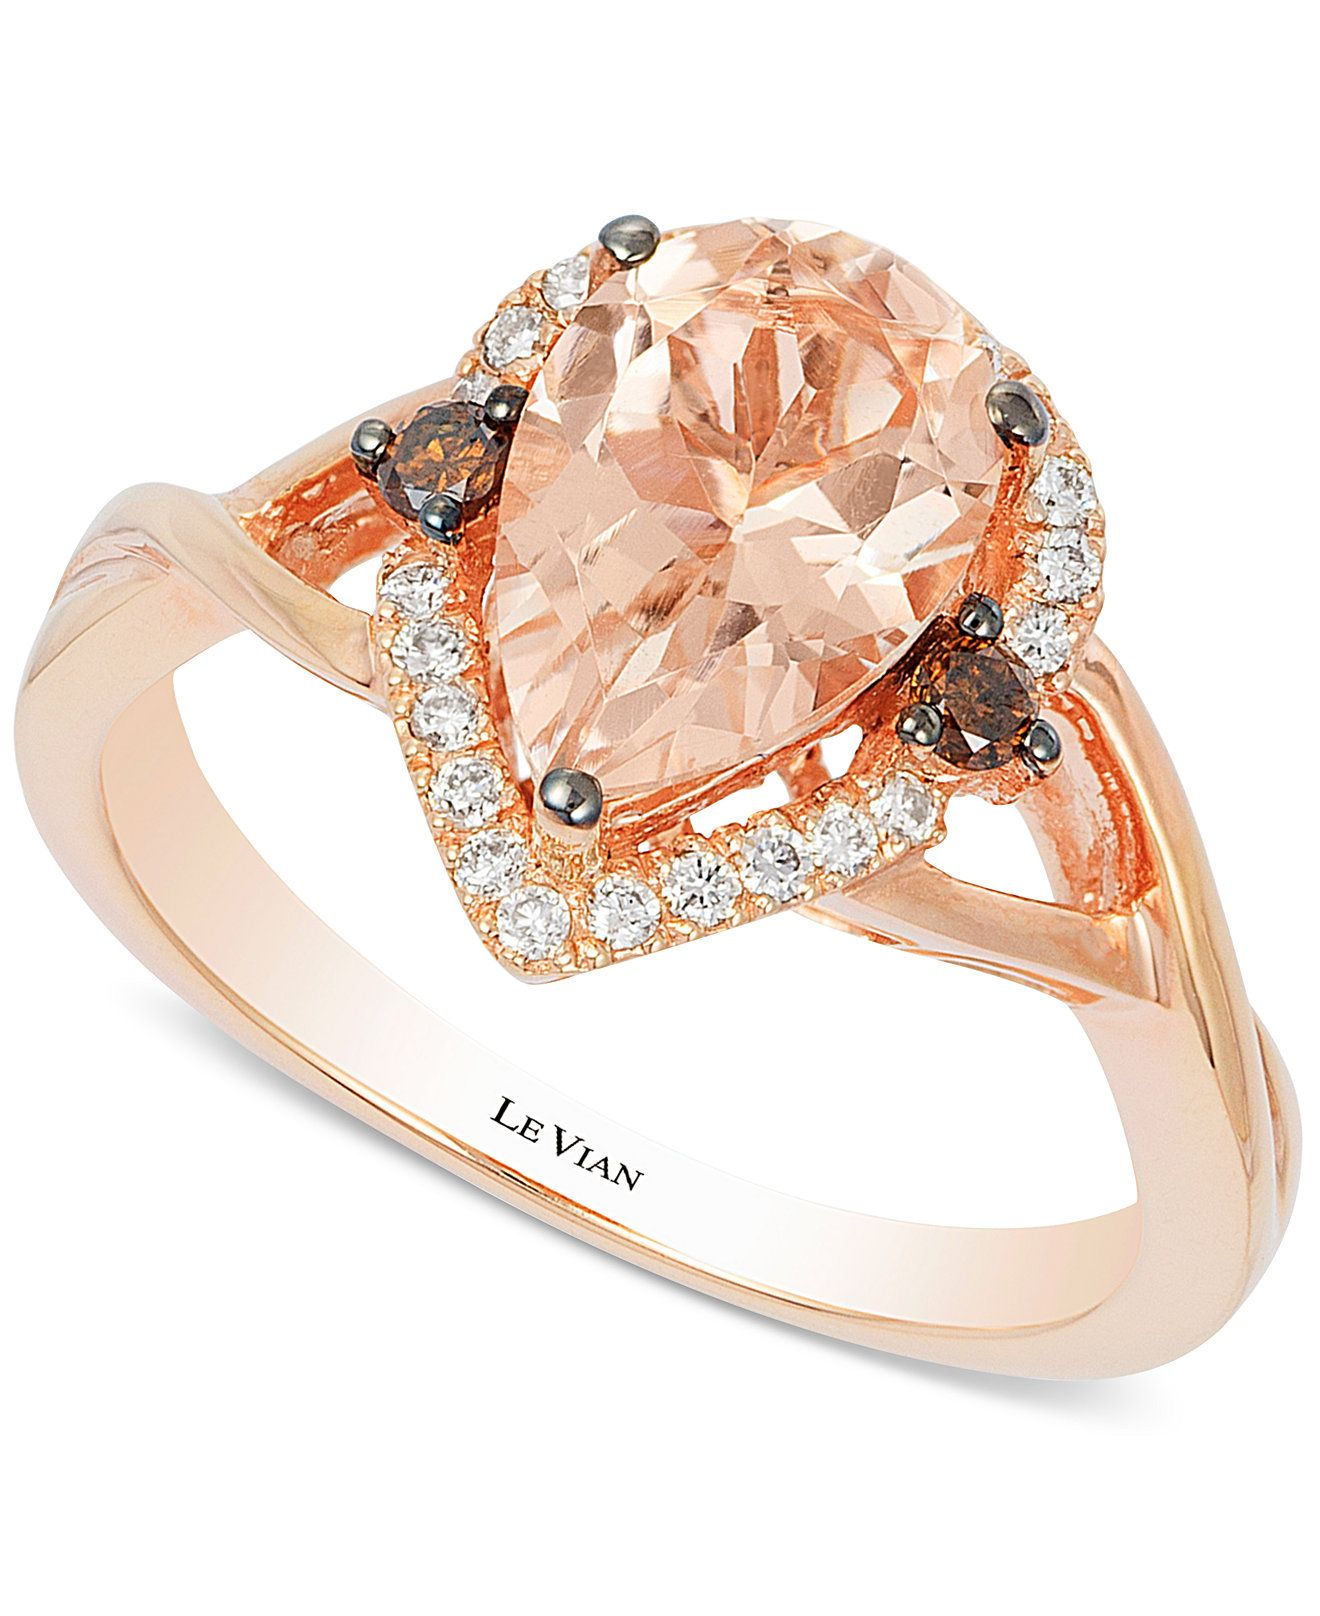 vian watch youtube the at kay wedding collection rings jewelers le